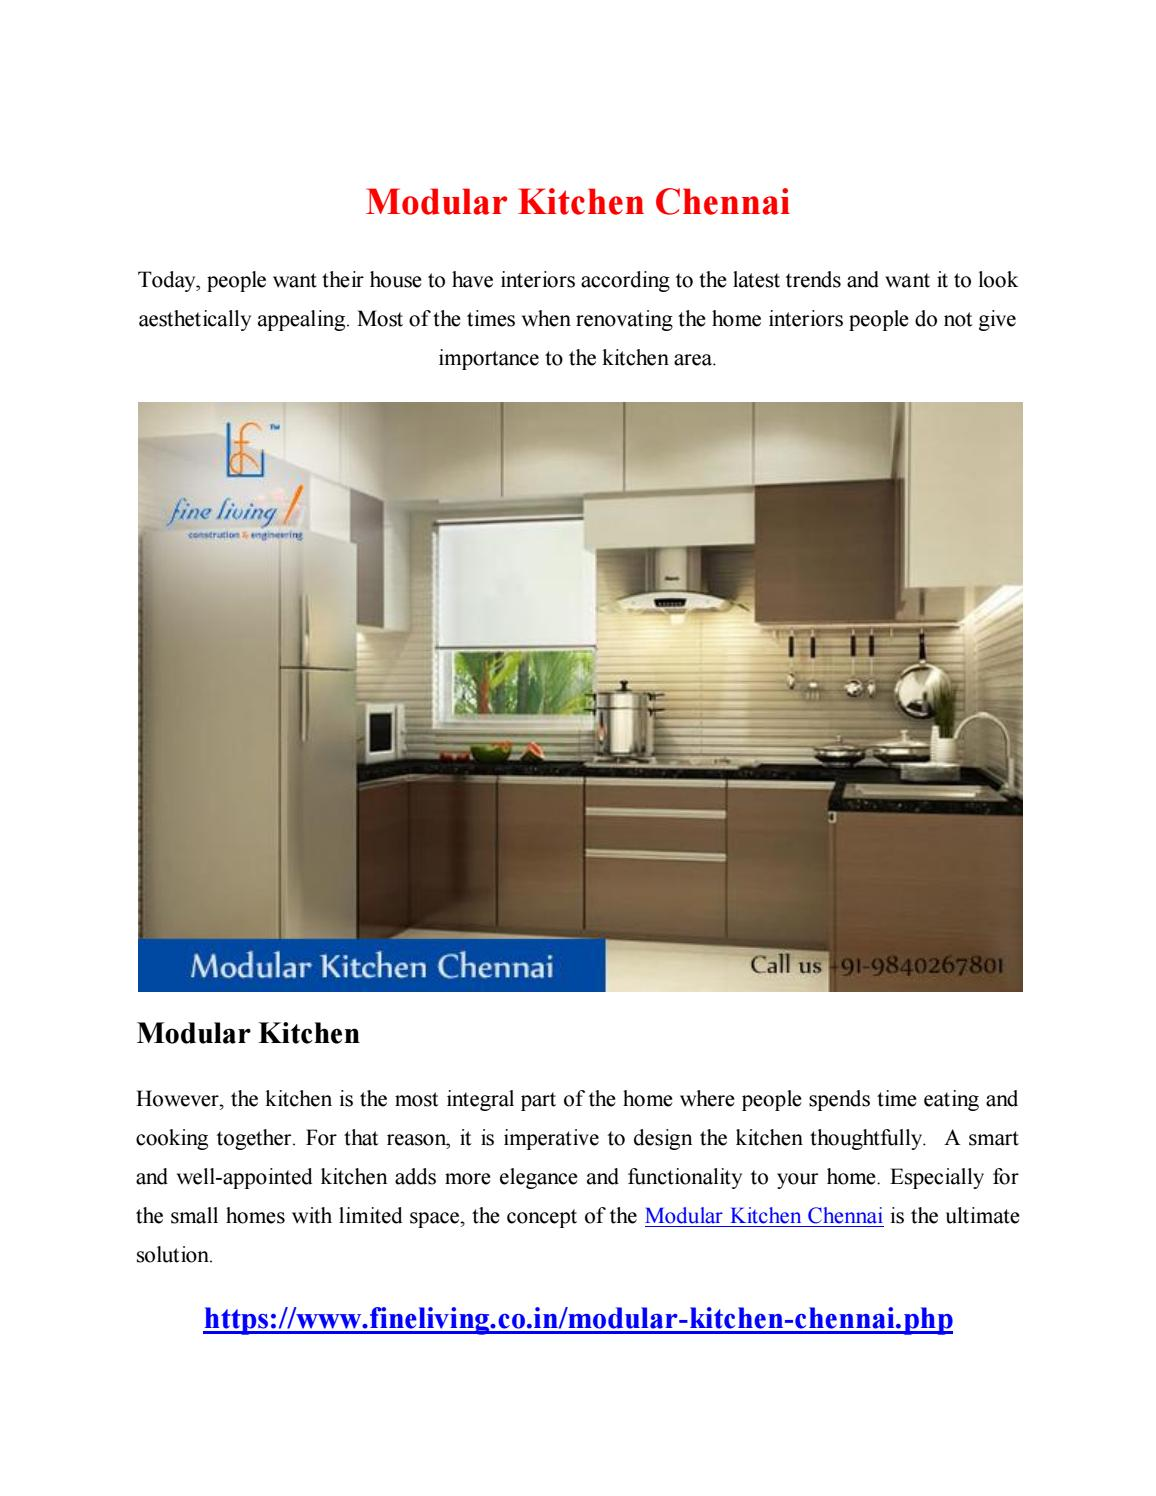 Modular Kitchen Chennai by yandex686 - issuu